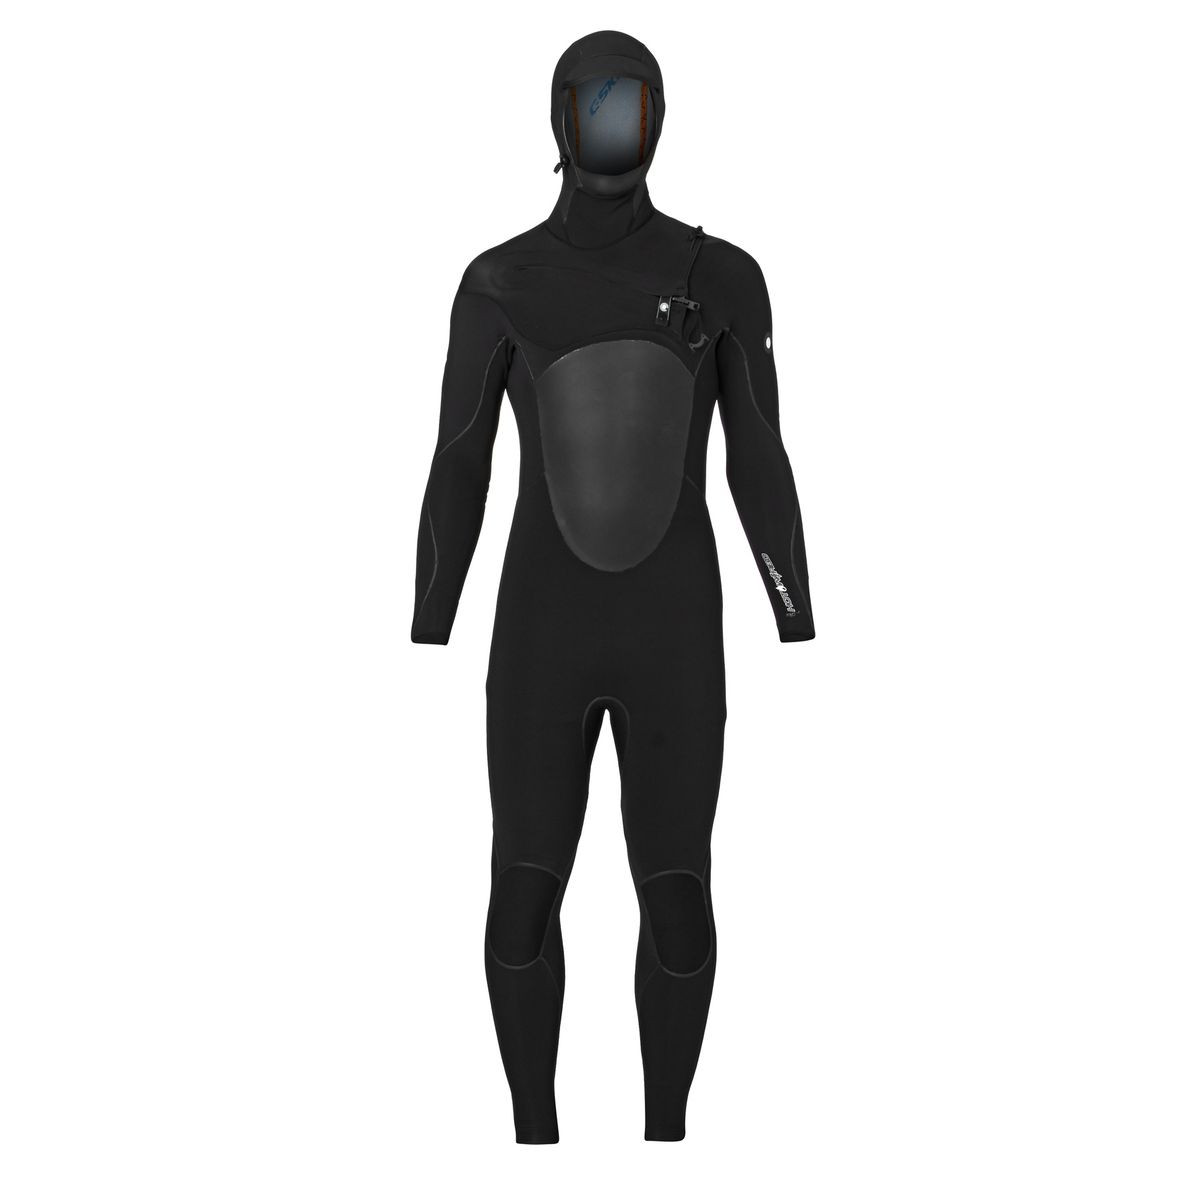 C-Skins Hotwired 5/4mm 2017 Hooded Chest Zip Wetsuit - Black